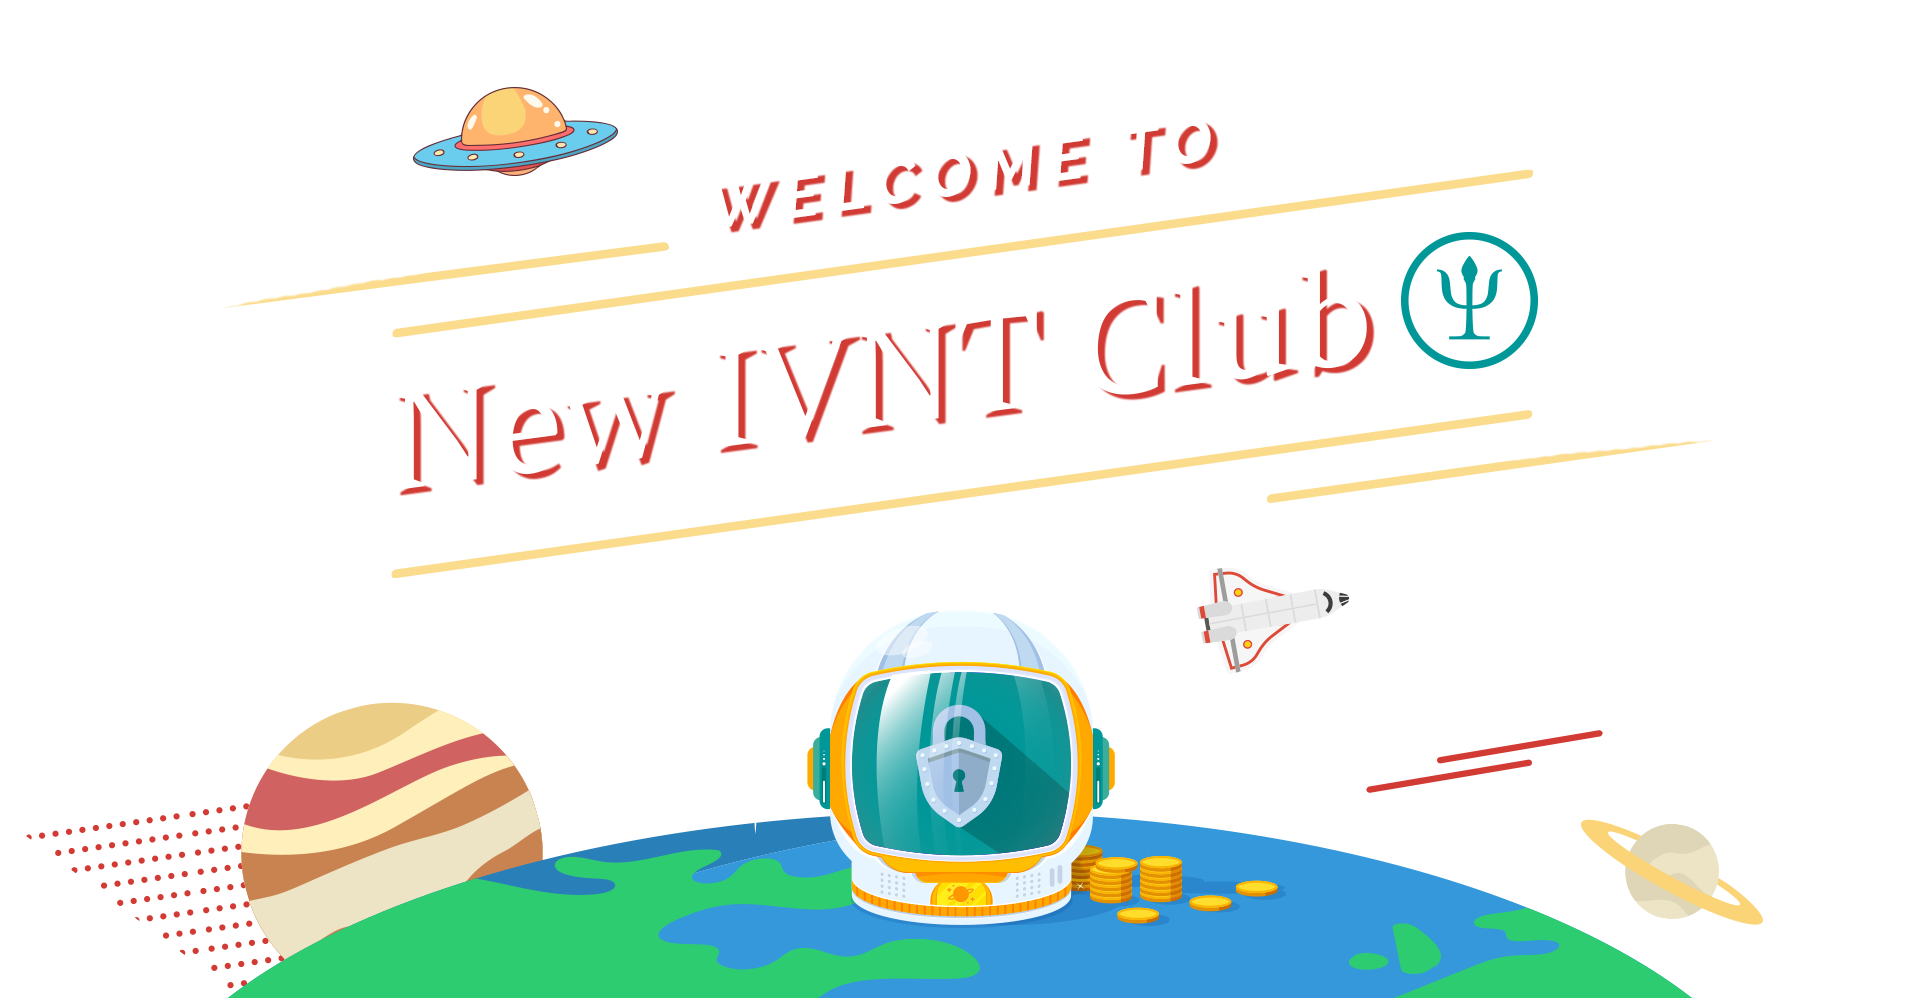 Welcome to IVNT Club